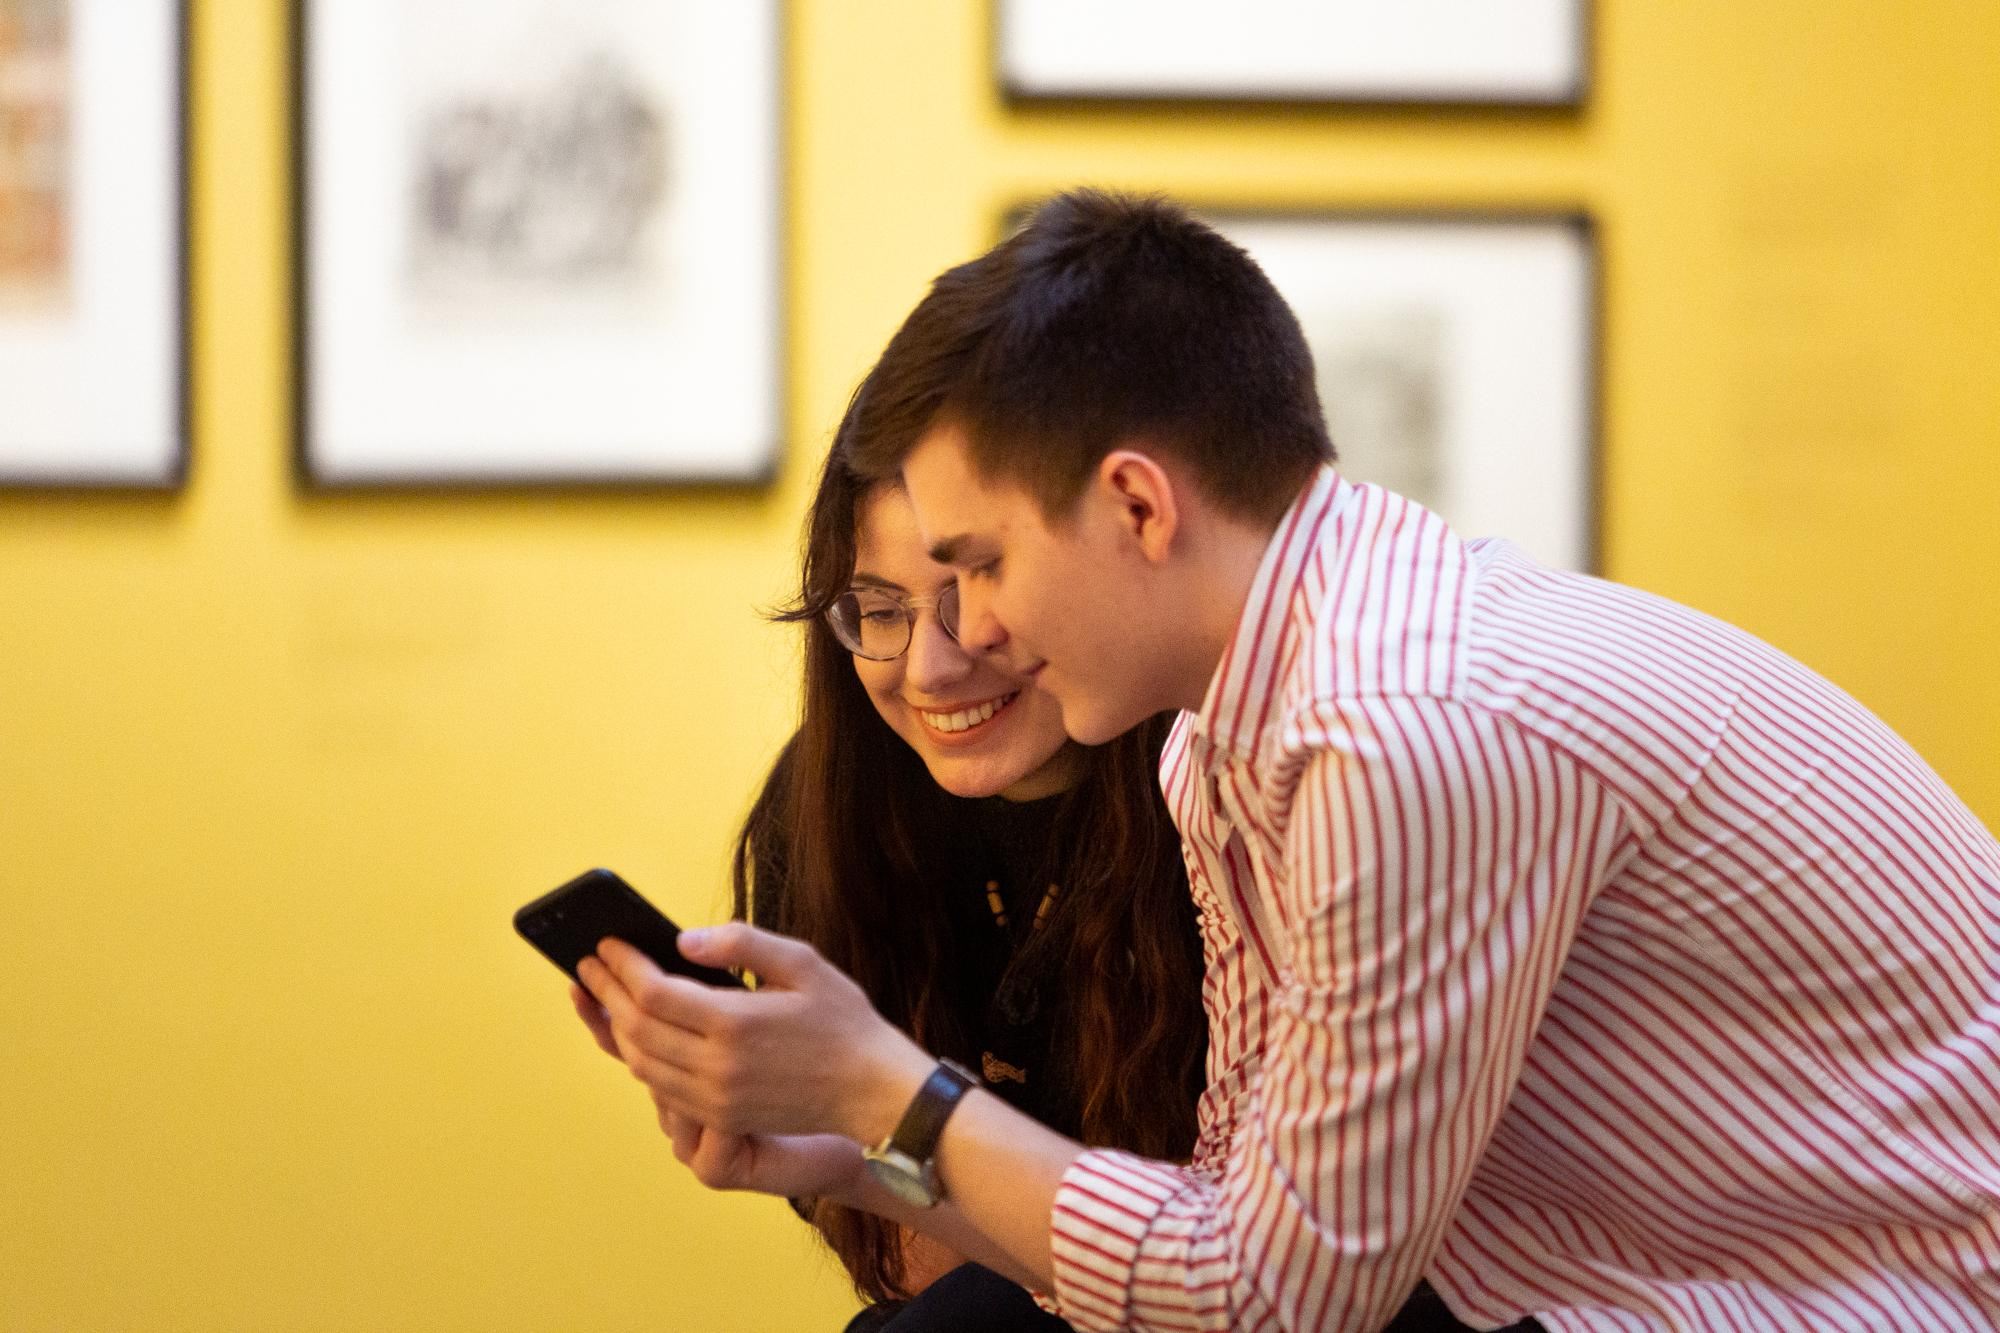 Visitors smiling whilst focused on their phone in an exhibition room.